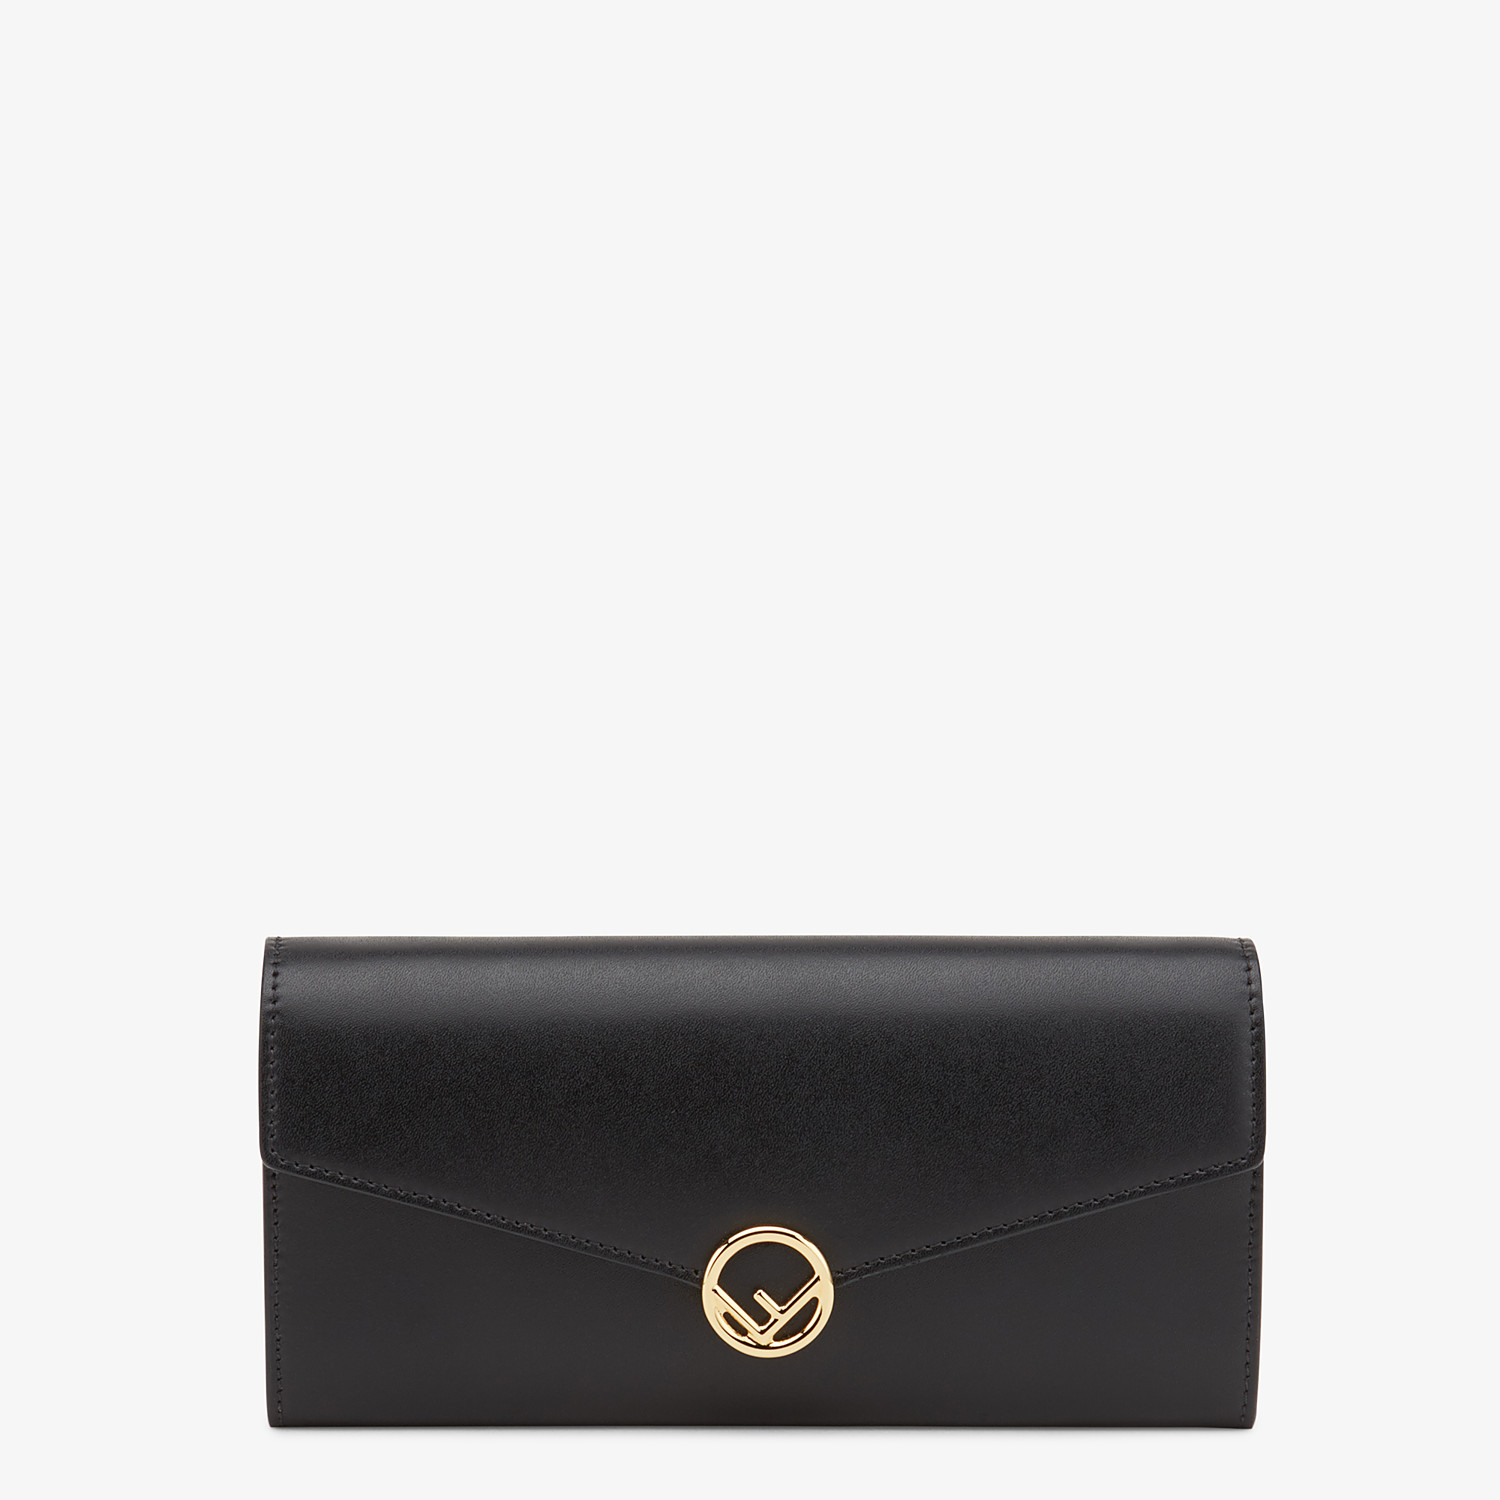 FENDI CONTINENTAL WITH CHAIN - Black leather wallet - view 1 detail